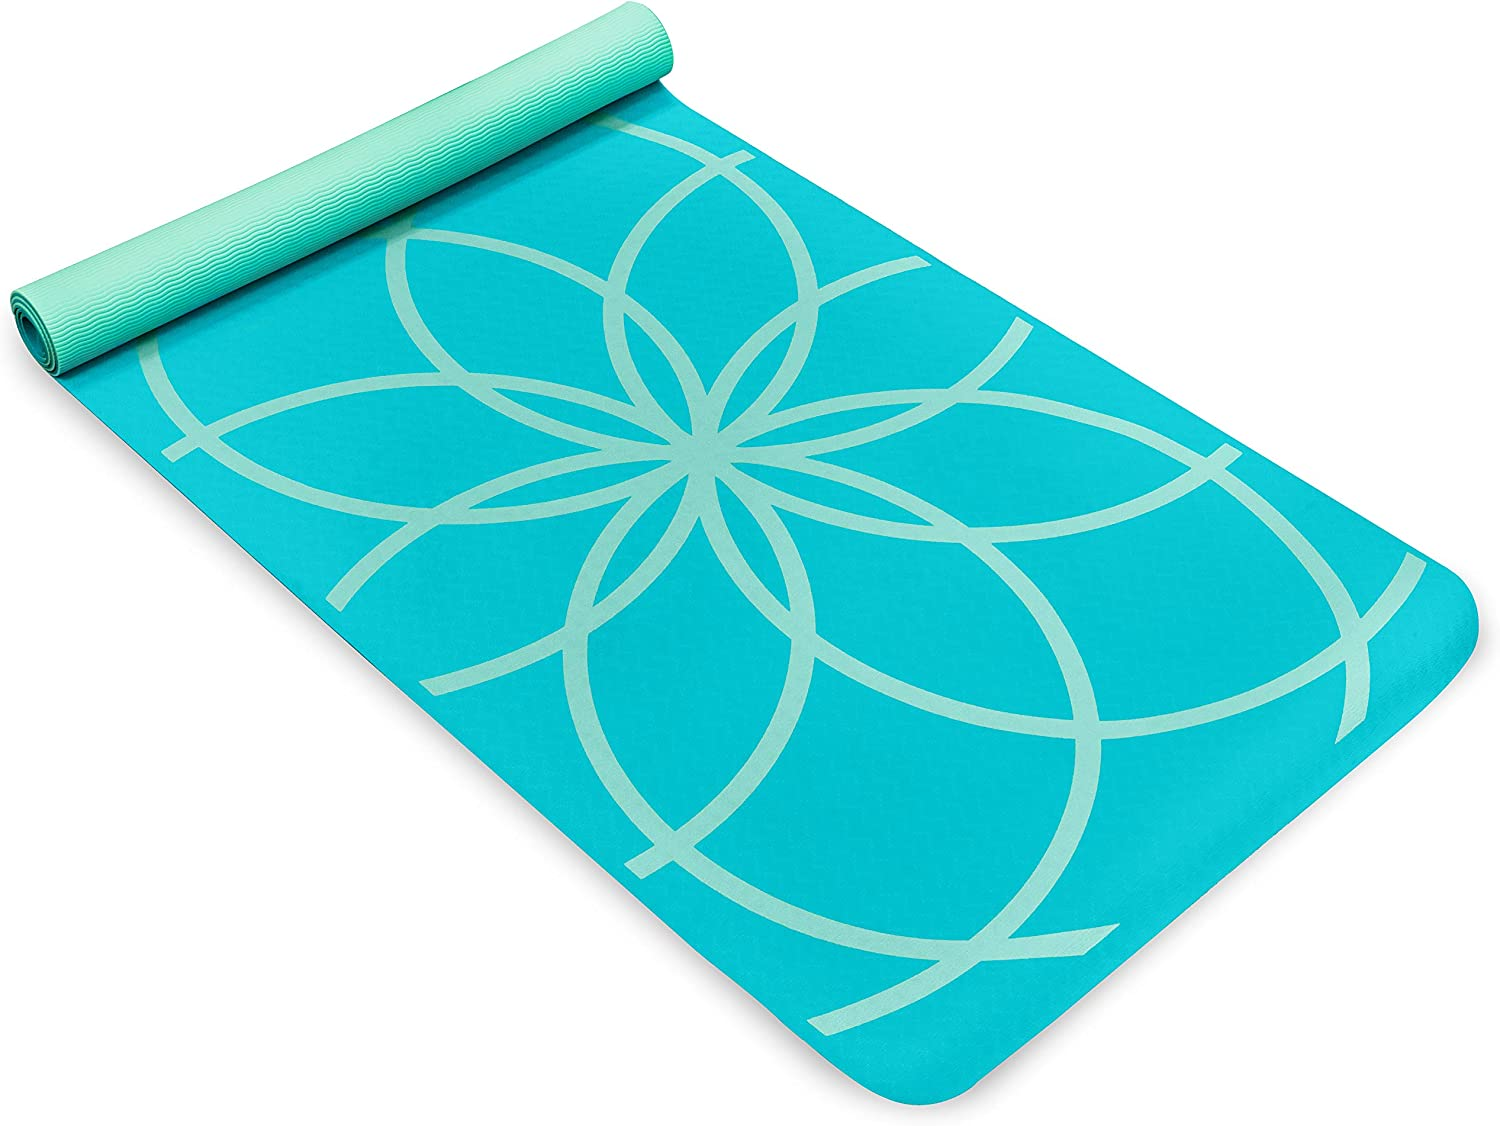 Life Energy EkoSmart Non-Slip Exercise Yoga Mat with Carrying Strap, 4 mm Thick